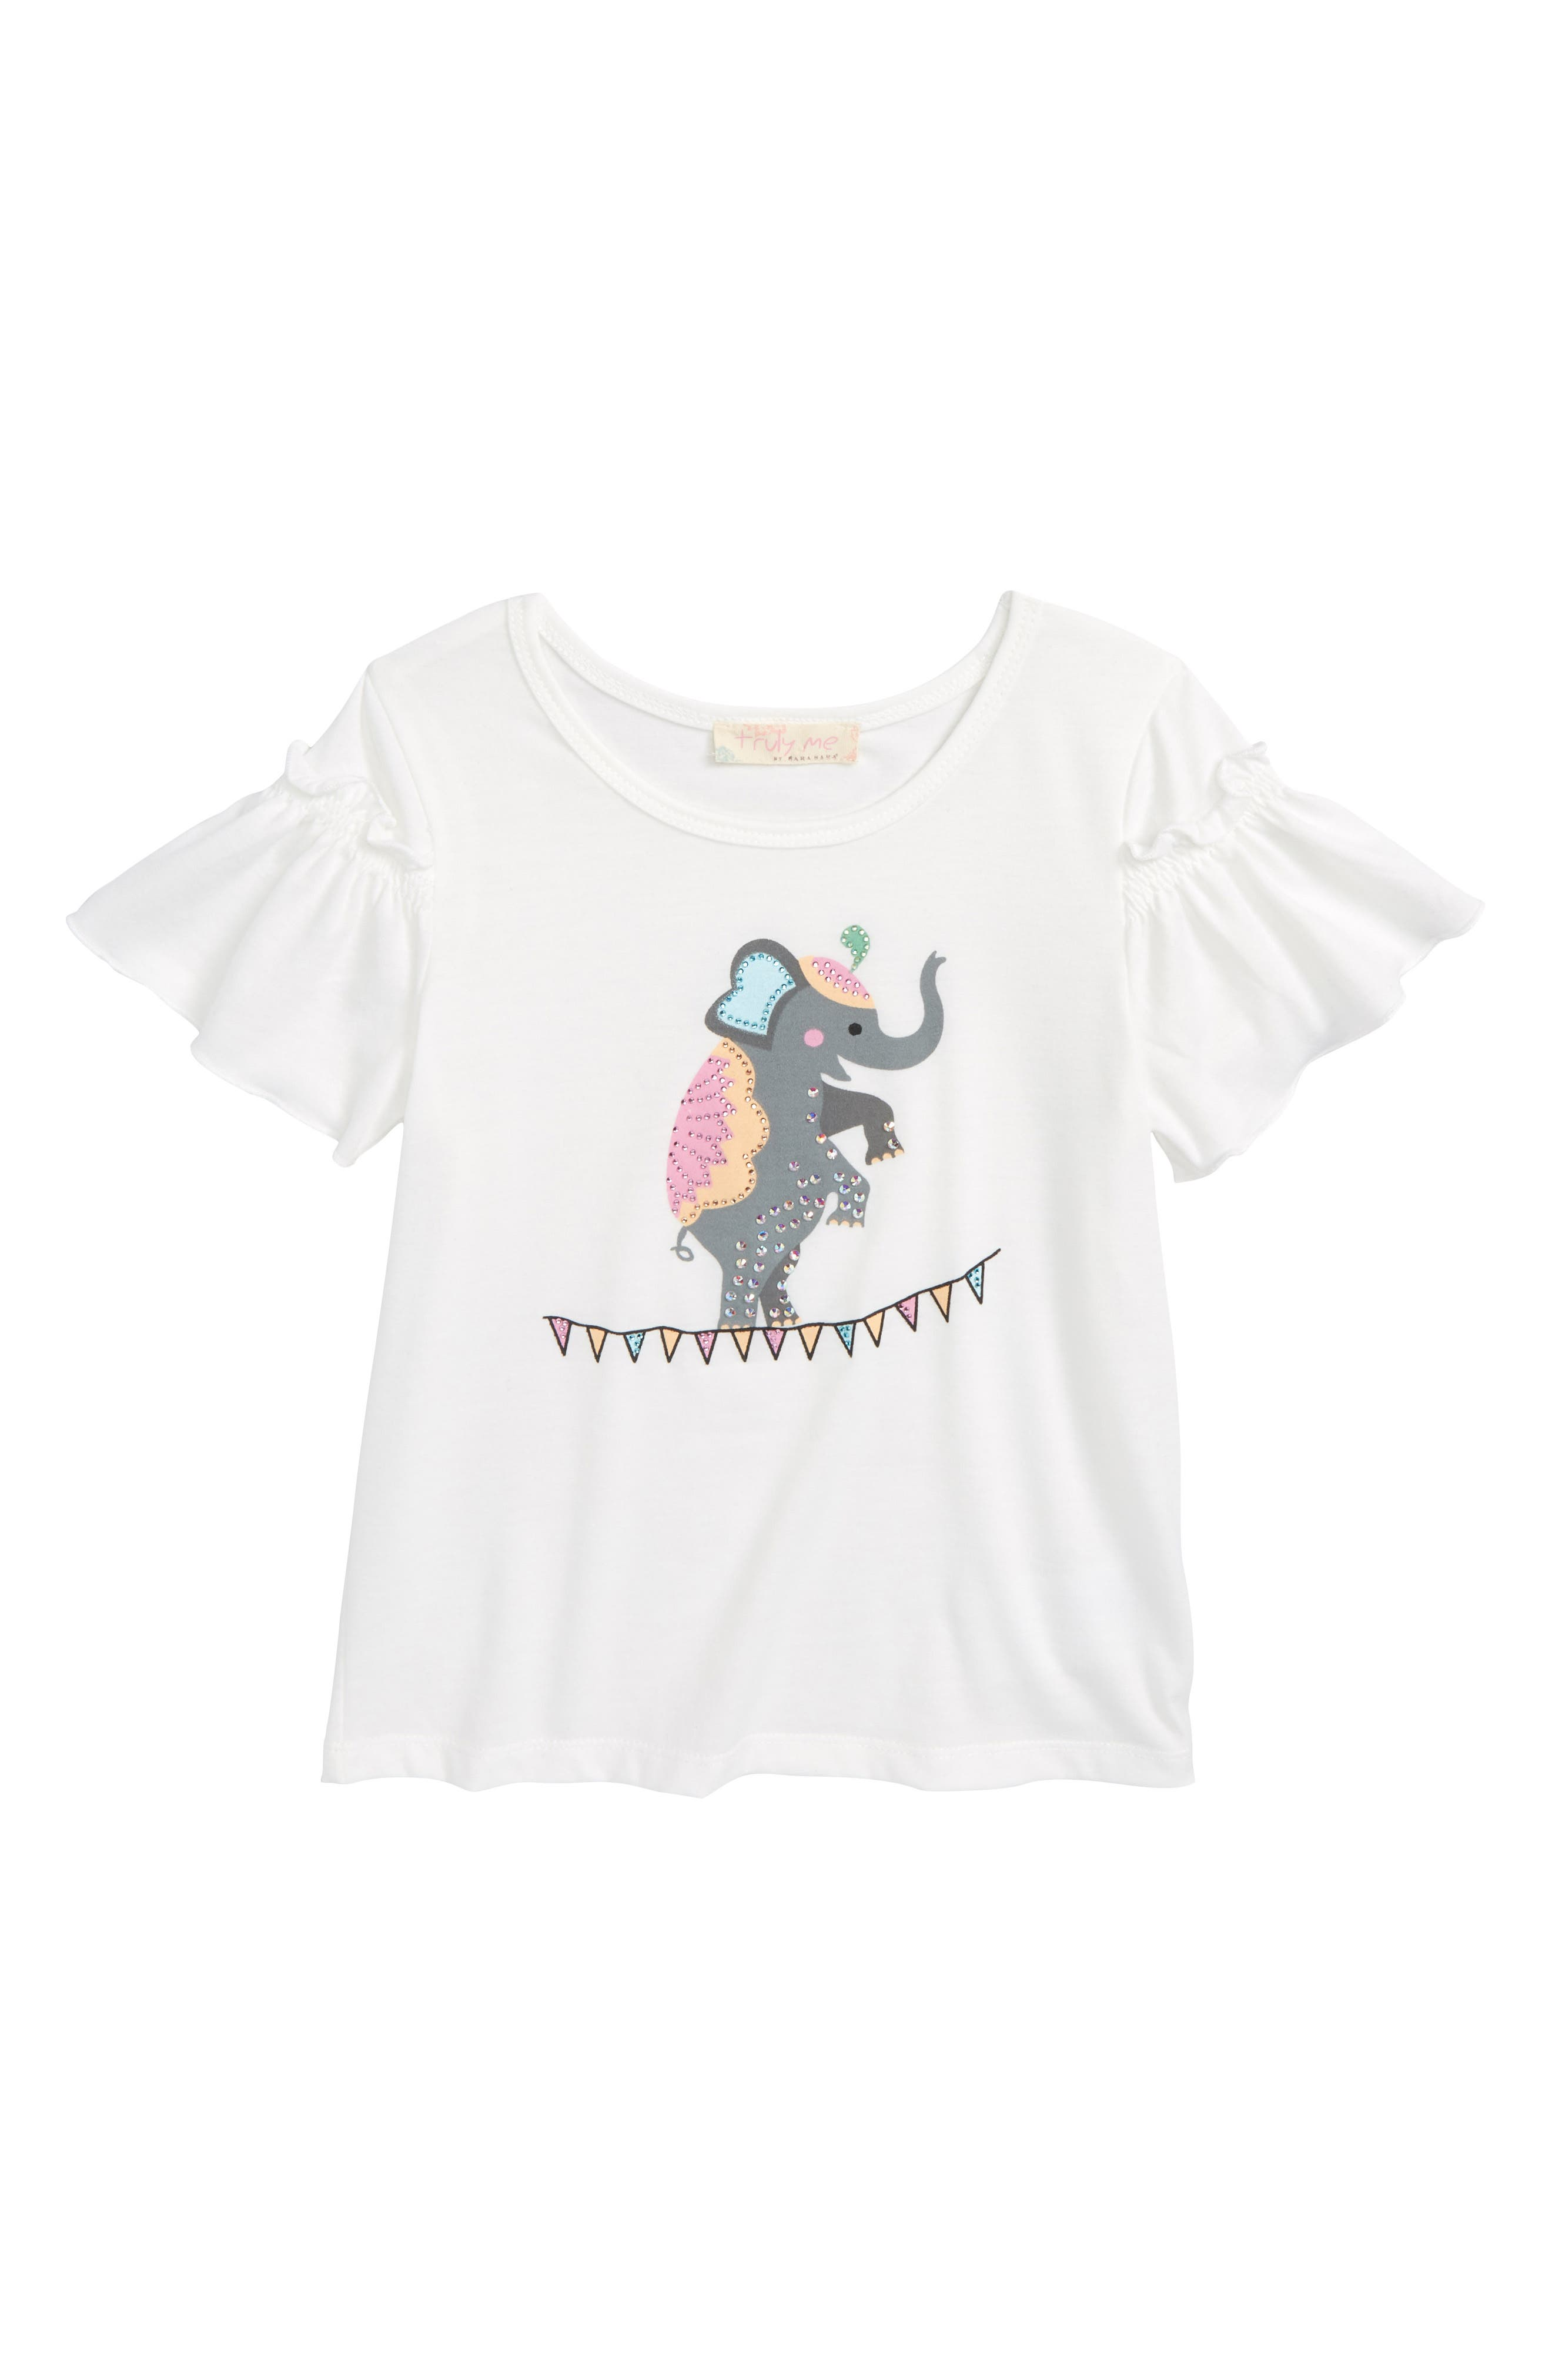 Embellished Elephant Graphic Tee,                             Main thumbnail 1, color,                             White